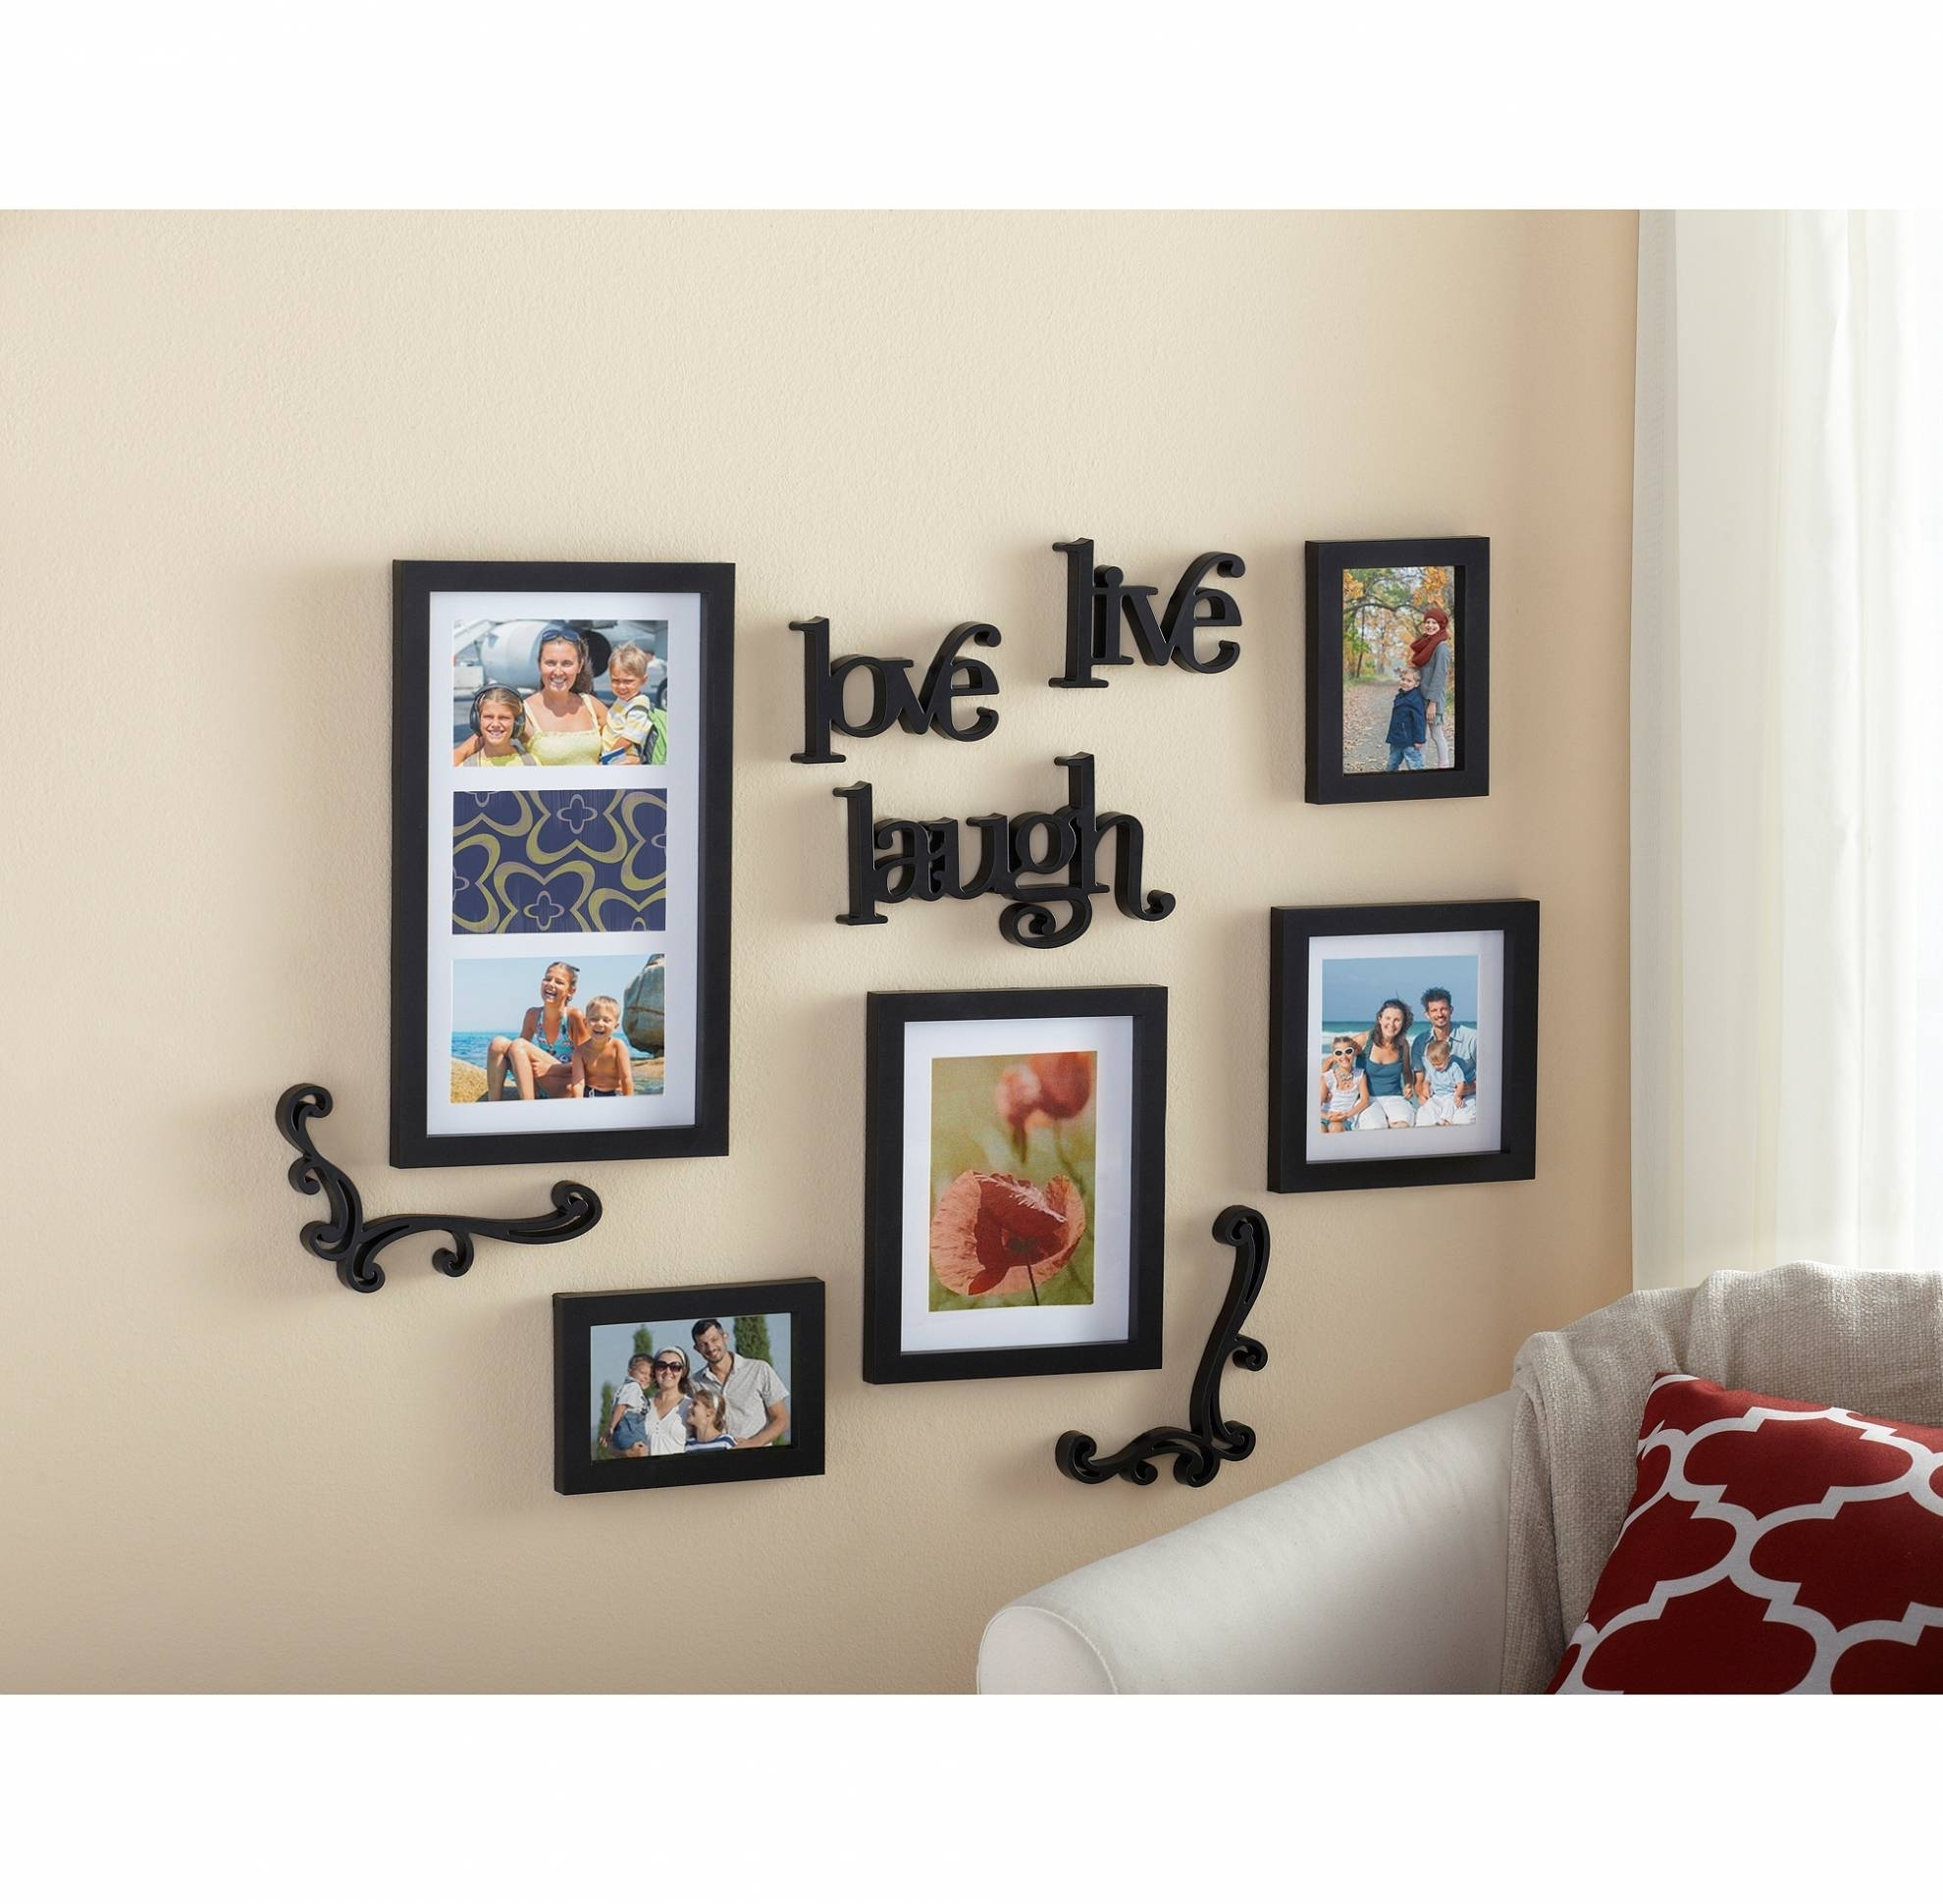 18 Best Ideas Of Wall Art At Walmart With Most Up To Date Canvas Wall Art At Walmart (View 13 of 15)